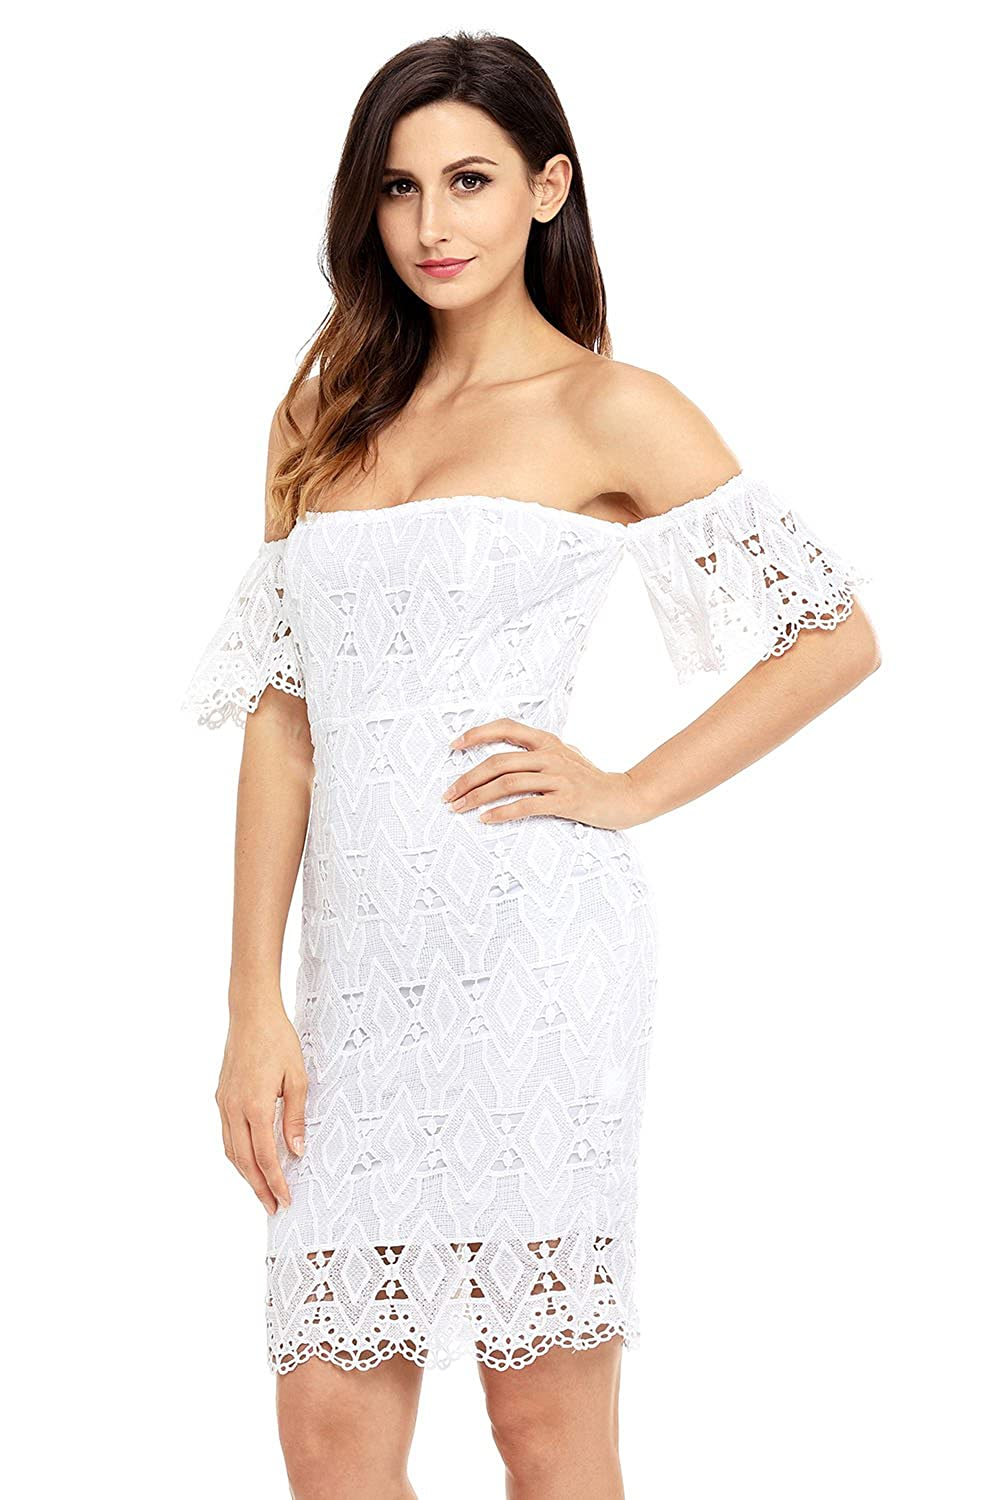 2c8219738697 Milocos Women's summer elegant white off shoulder lace dress: Amazon.co.uk:  Clothing